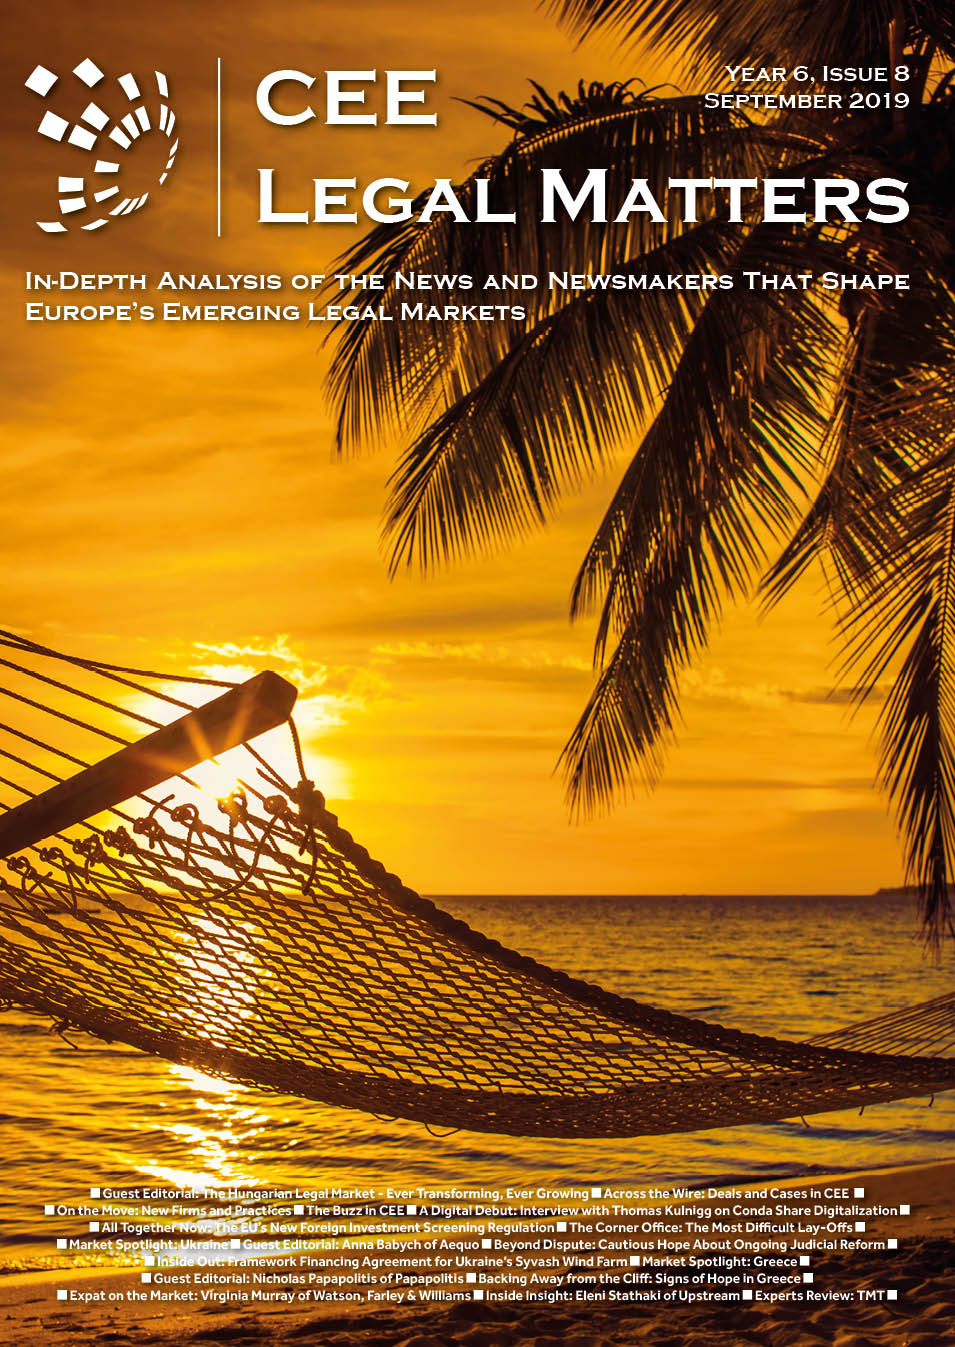 CEE Legal Matters: Issue 6.8.